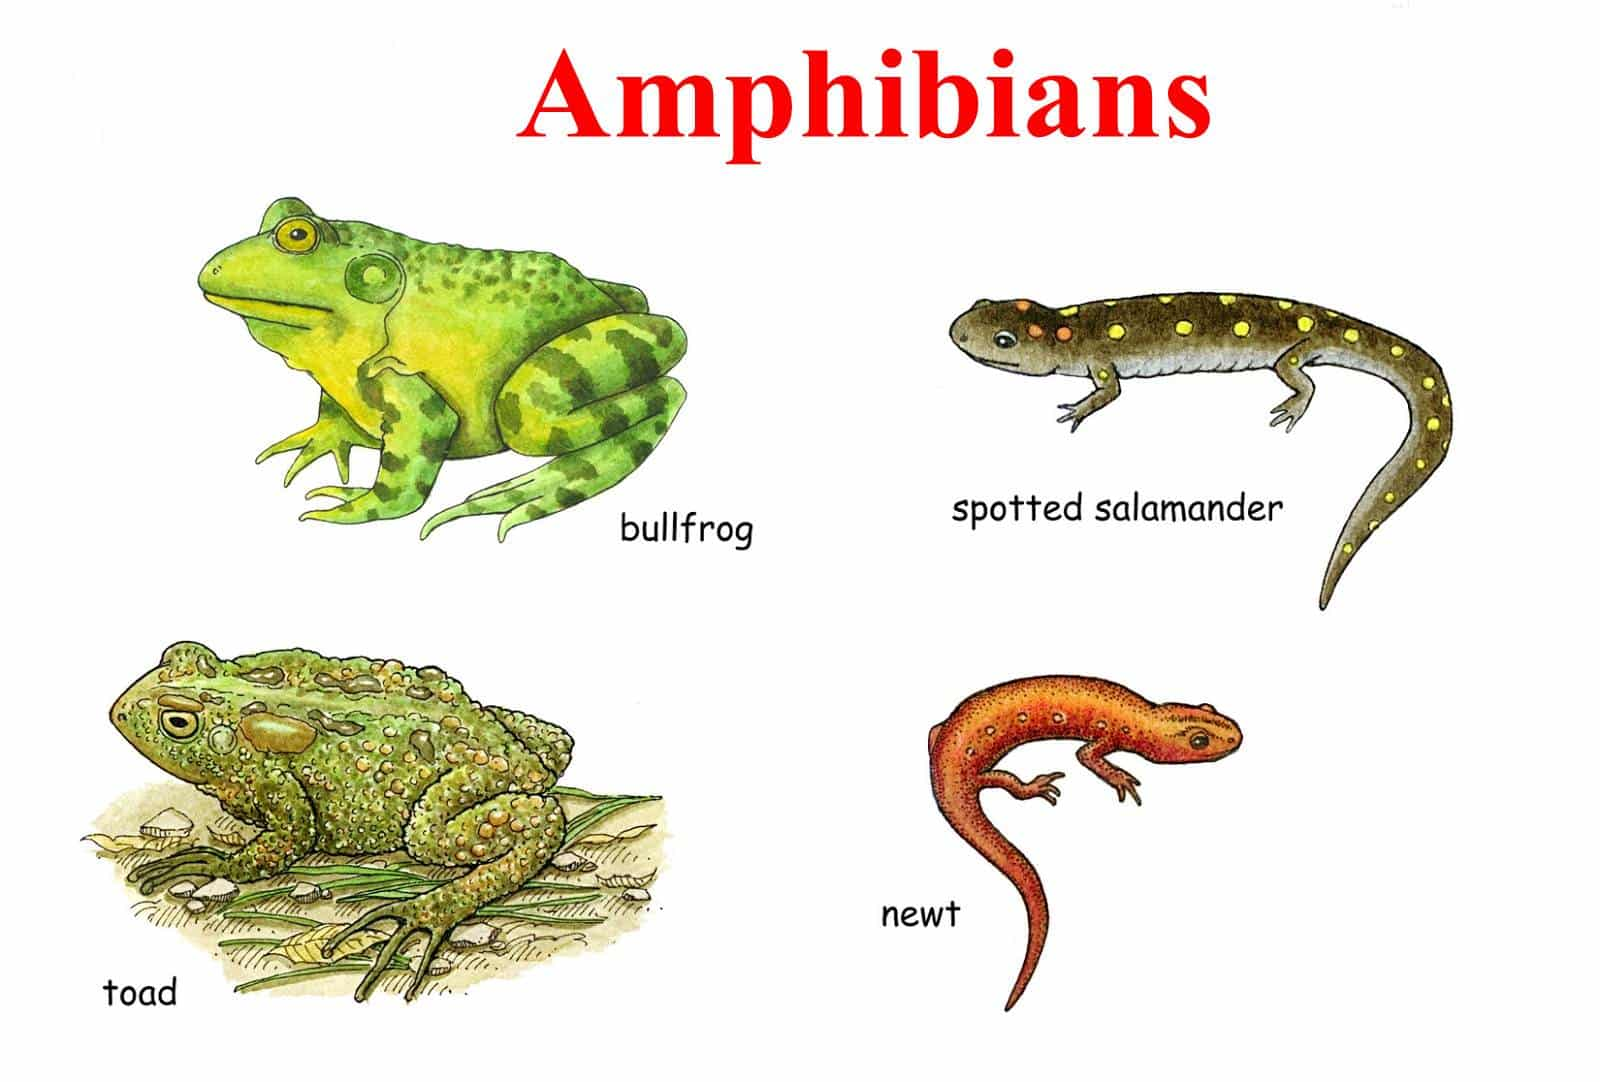 Learn English Vocabulary through Pictures: 100+ Animal Names 7